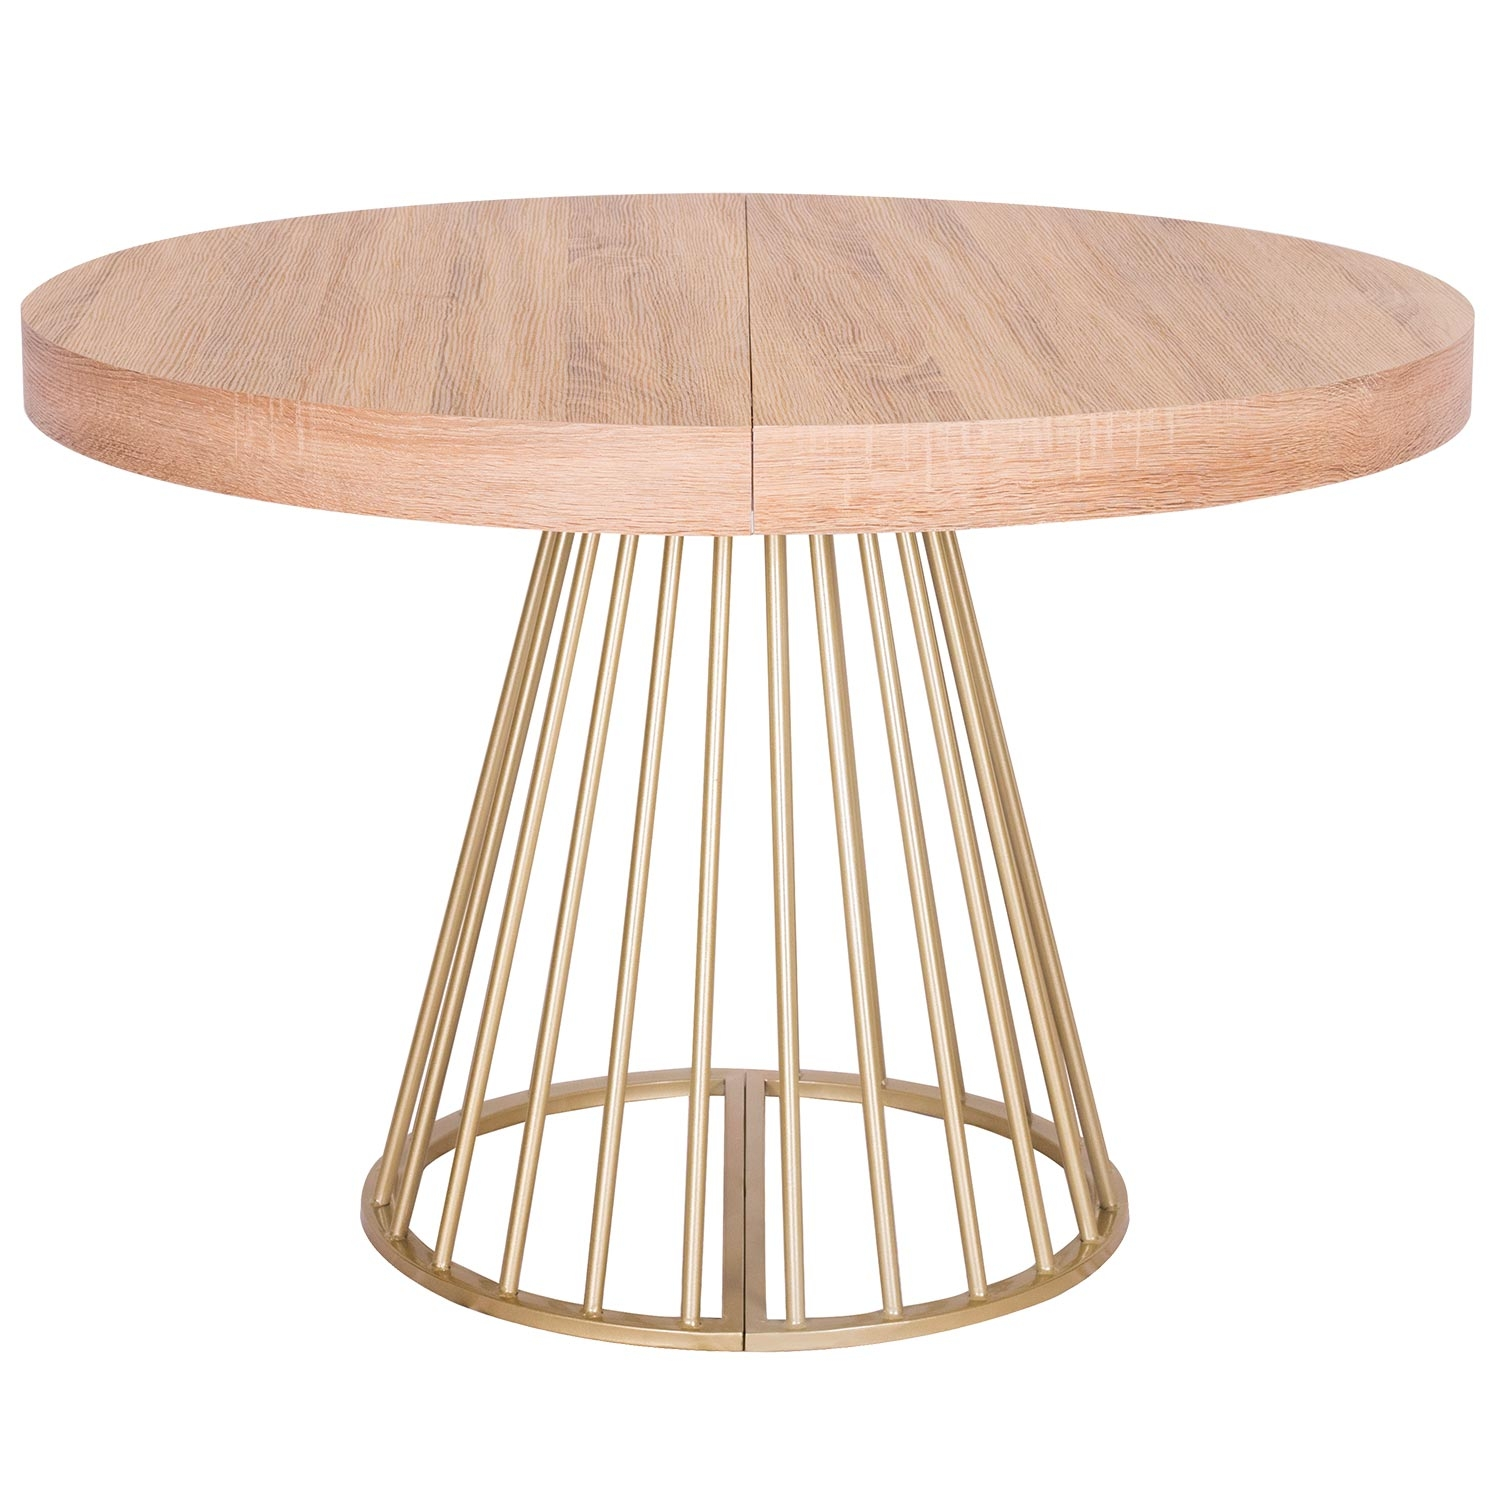 Table ronde extensible Soare Chêne Clair